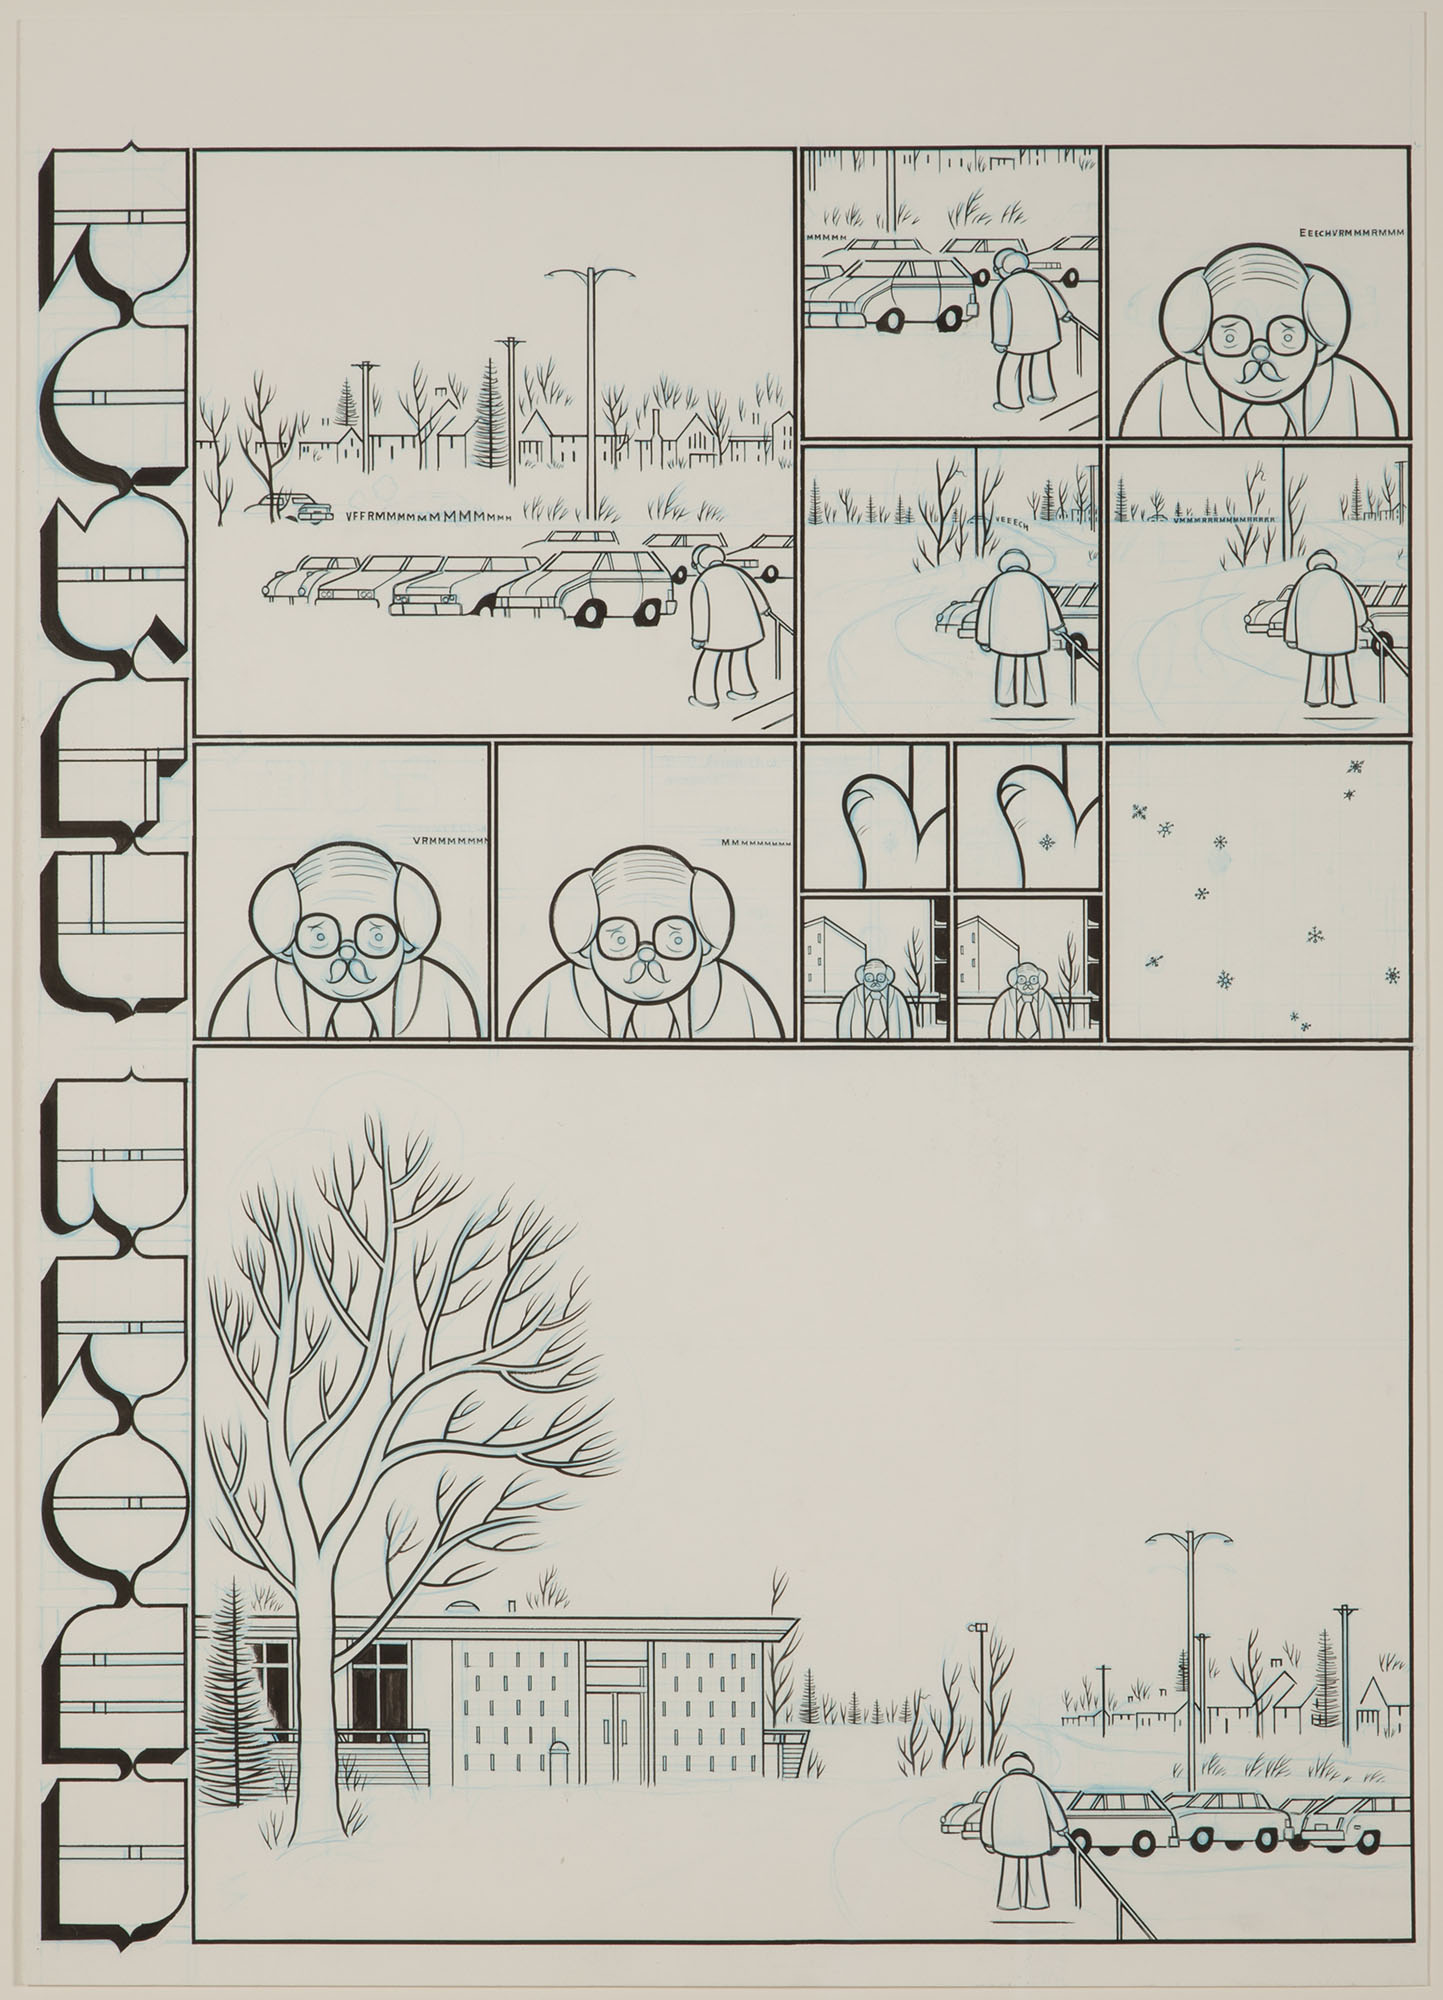 Chris Ware, Rusty-Brown, Mr. Brown and Snowflakes, 2002. Ink and blue pencil on board. Collection of DePaul Art Museum, Art Acquisition Endowment, 2010.45